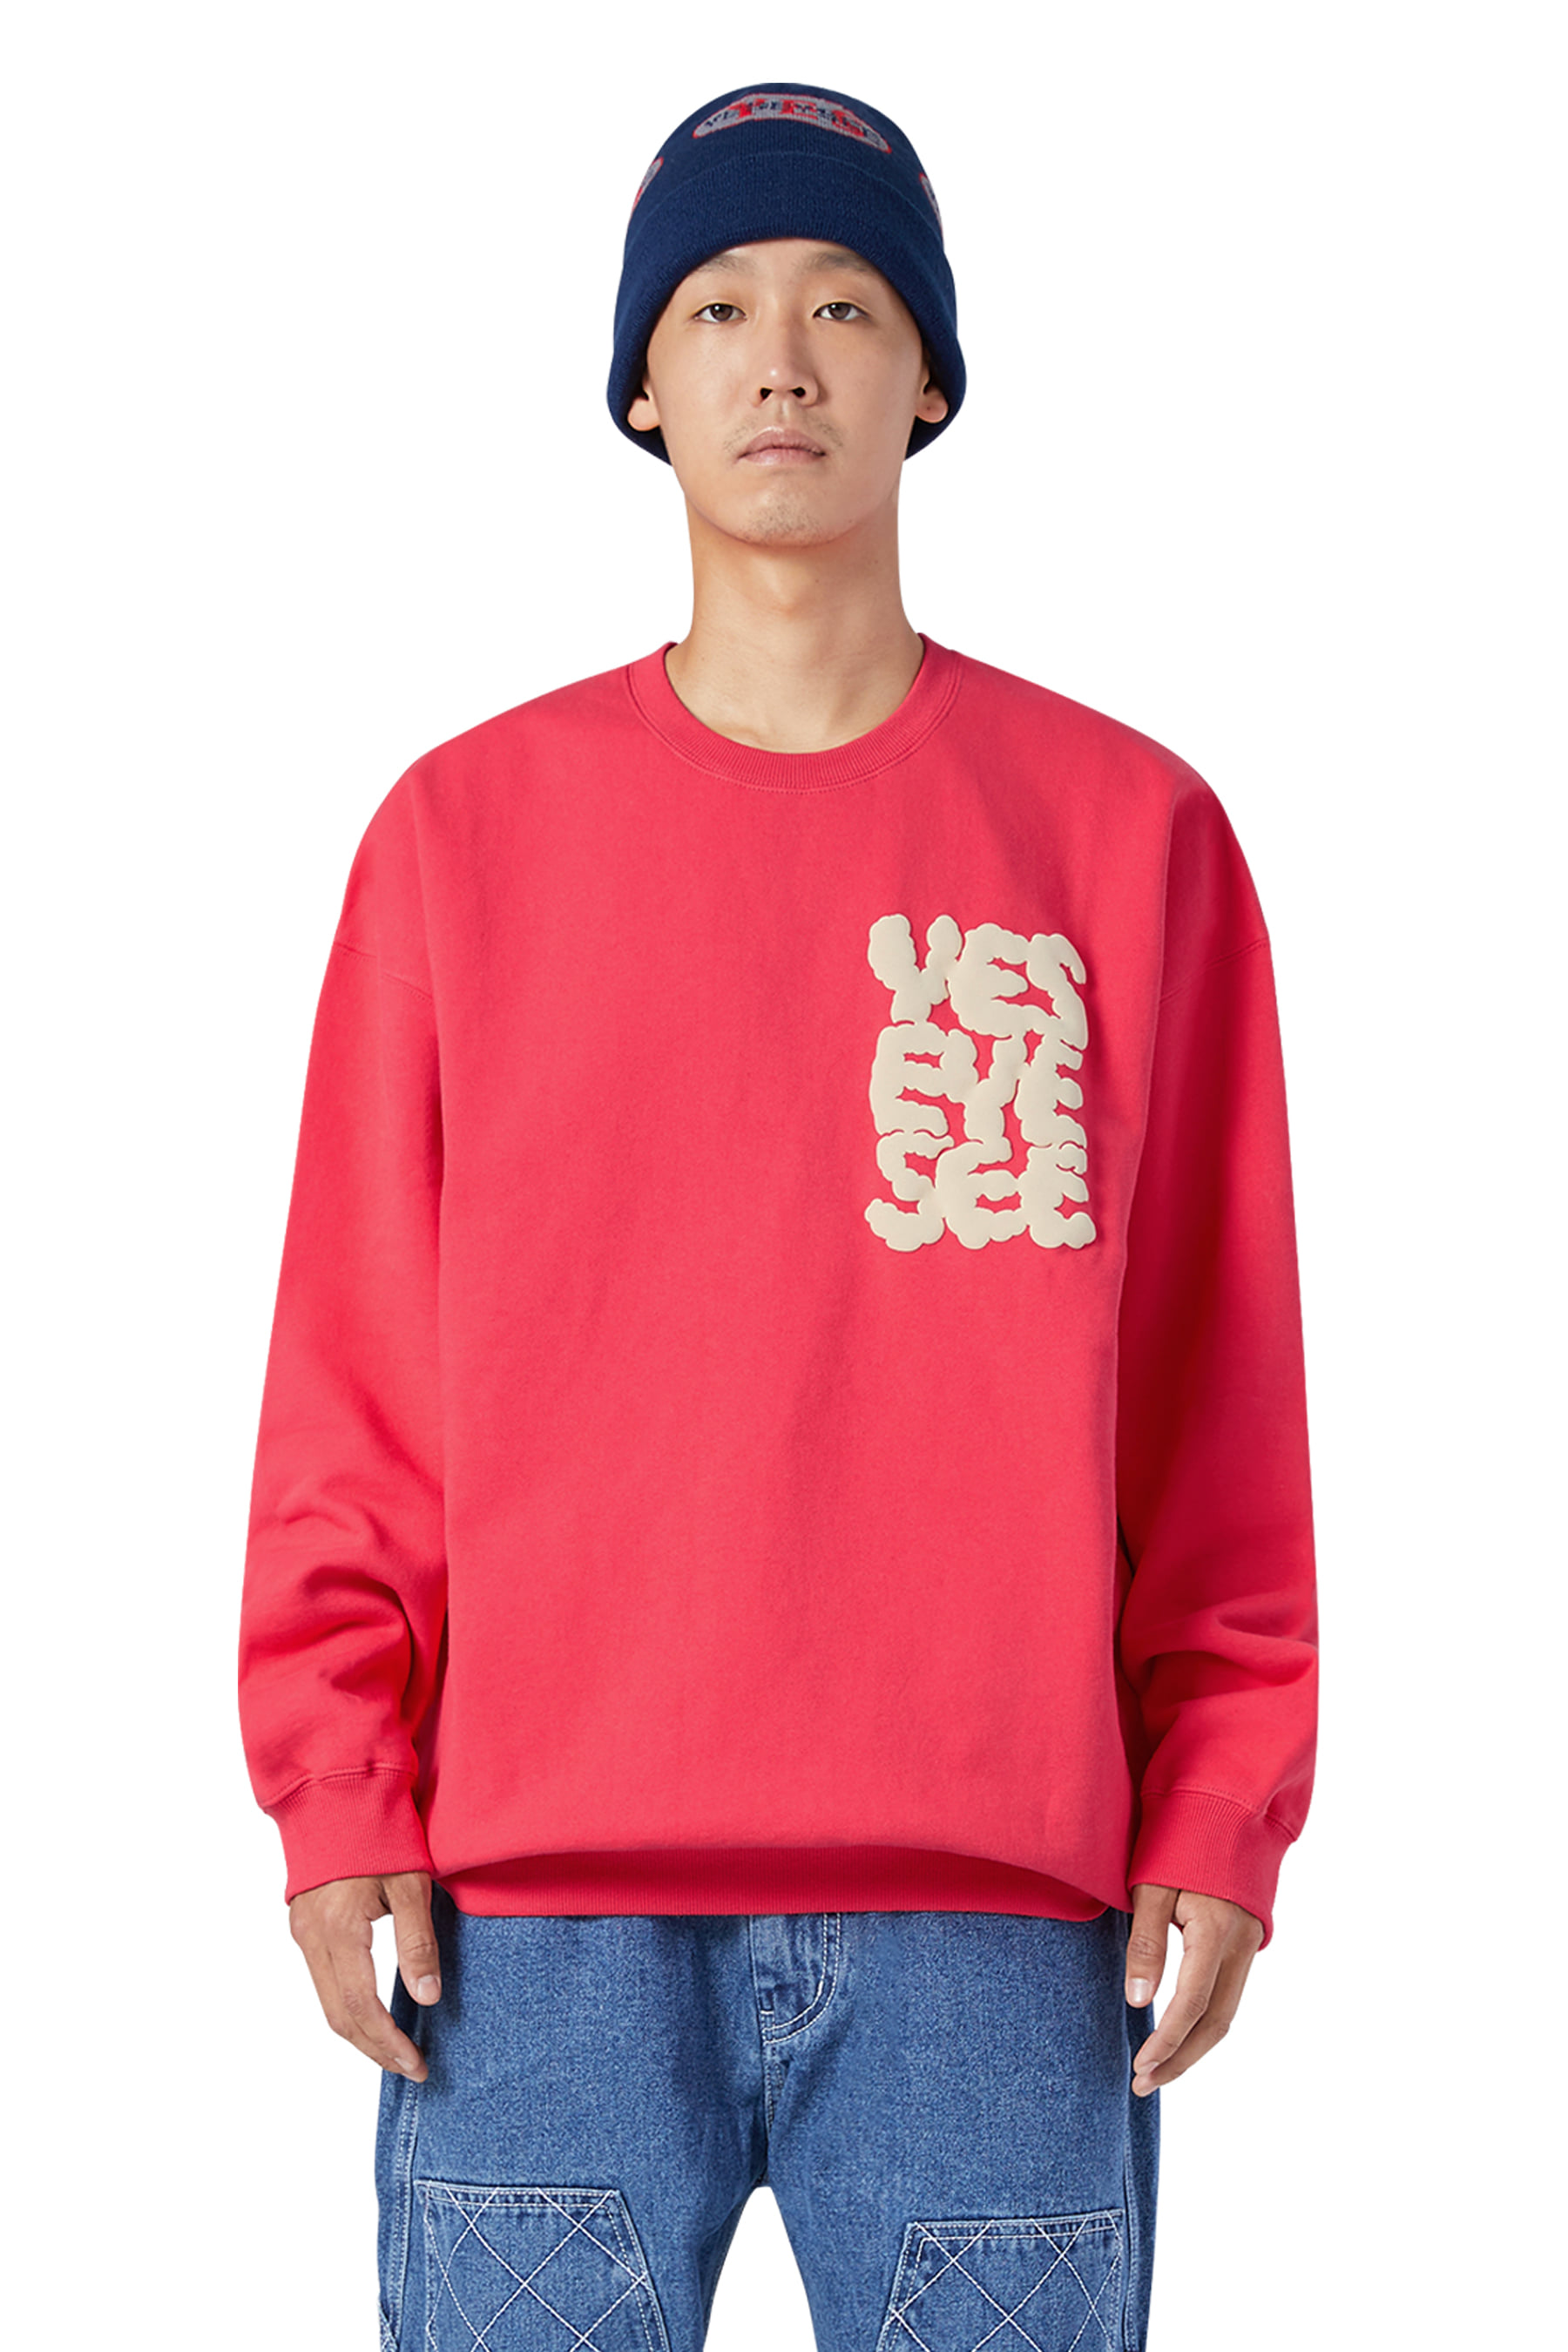 Y.E.S Heights Sweatshirts Red